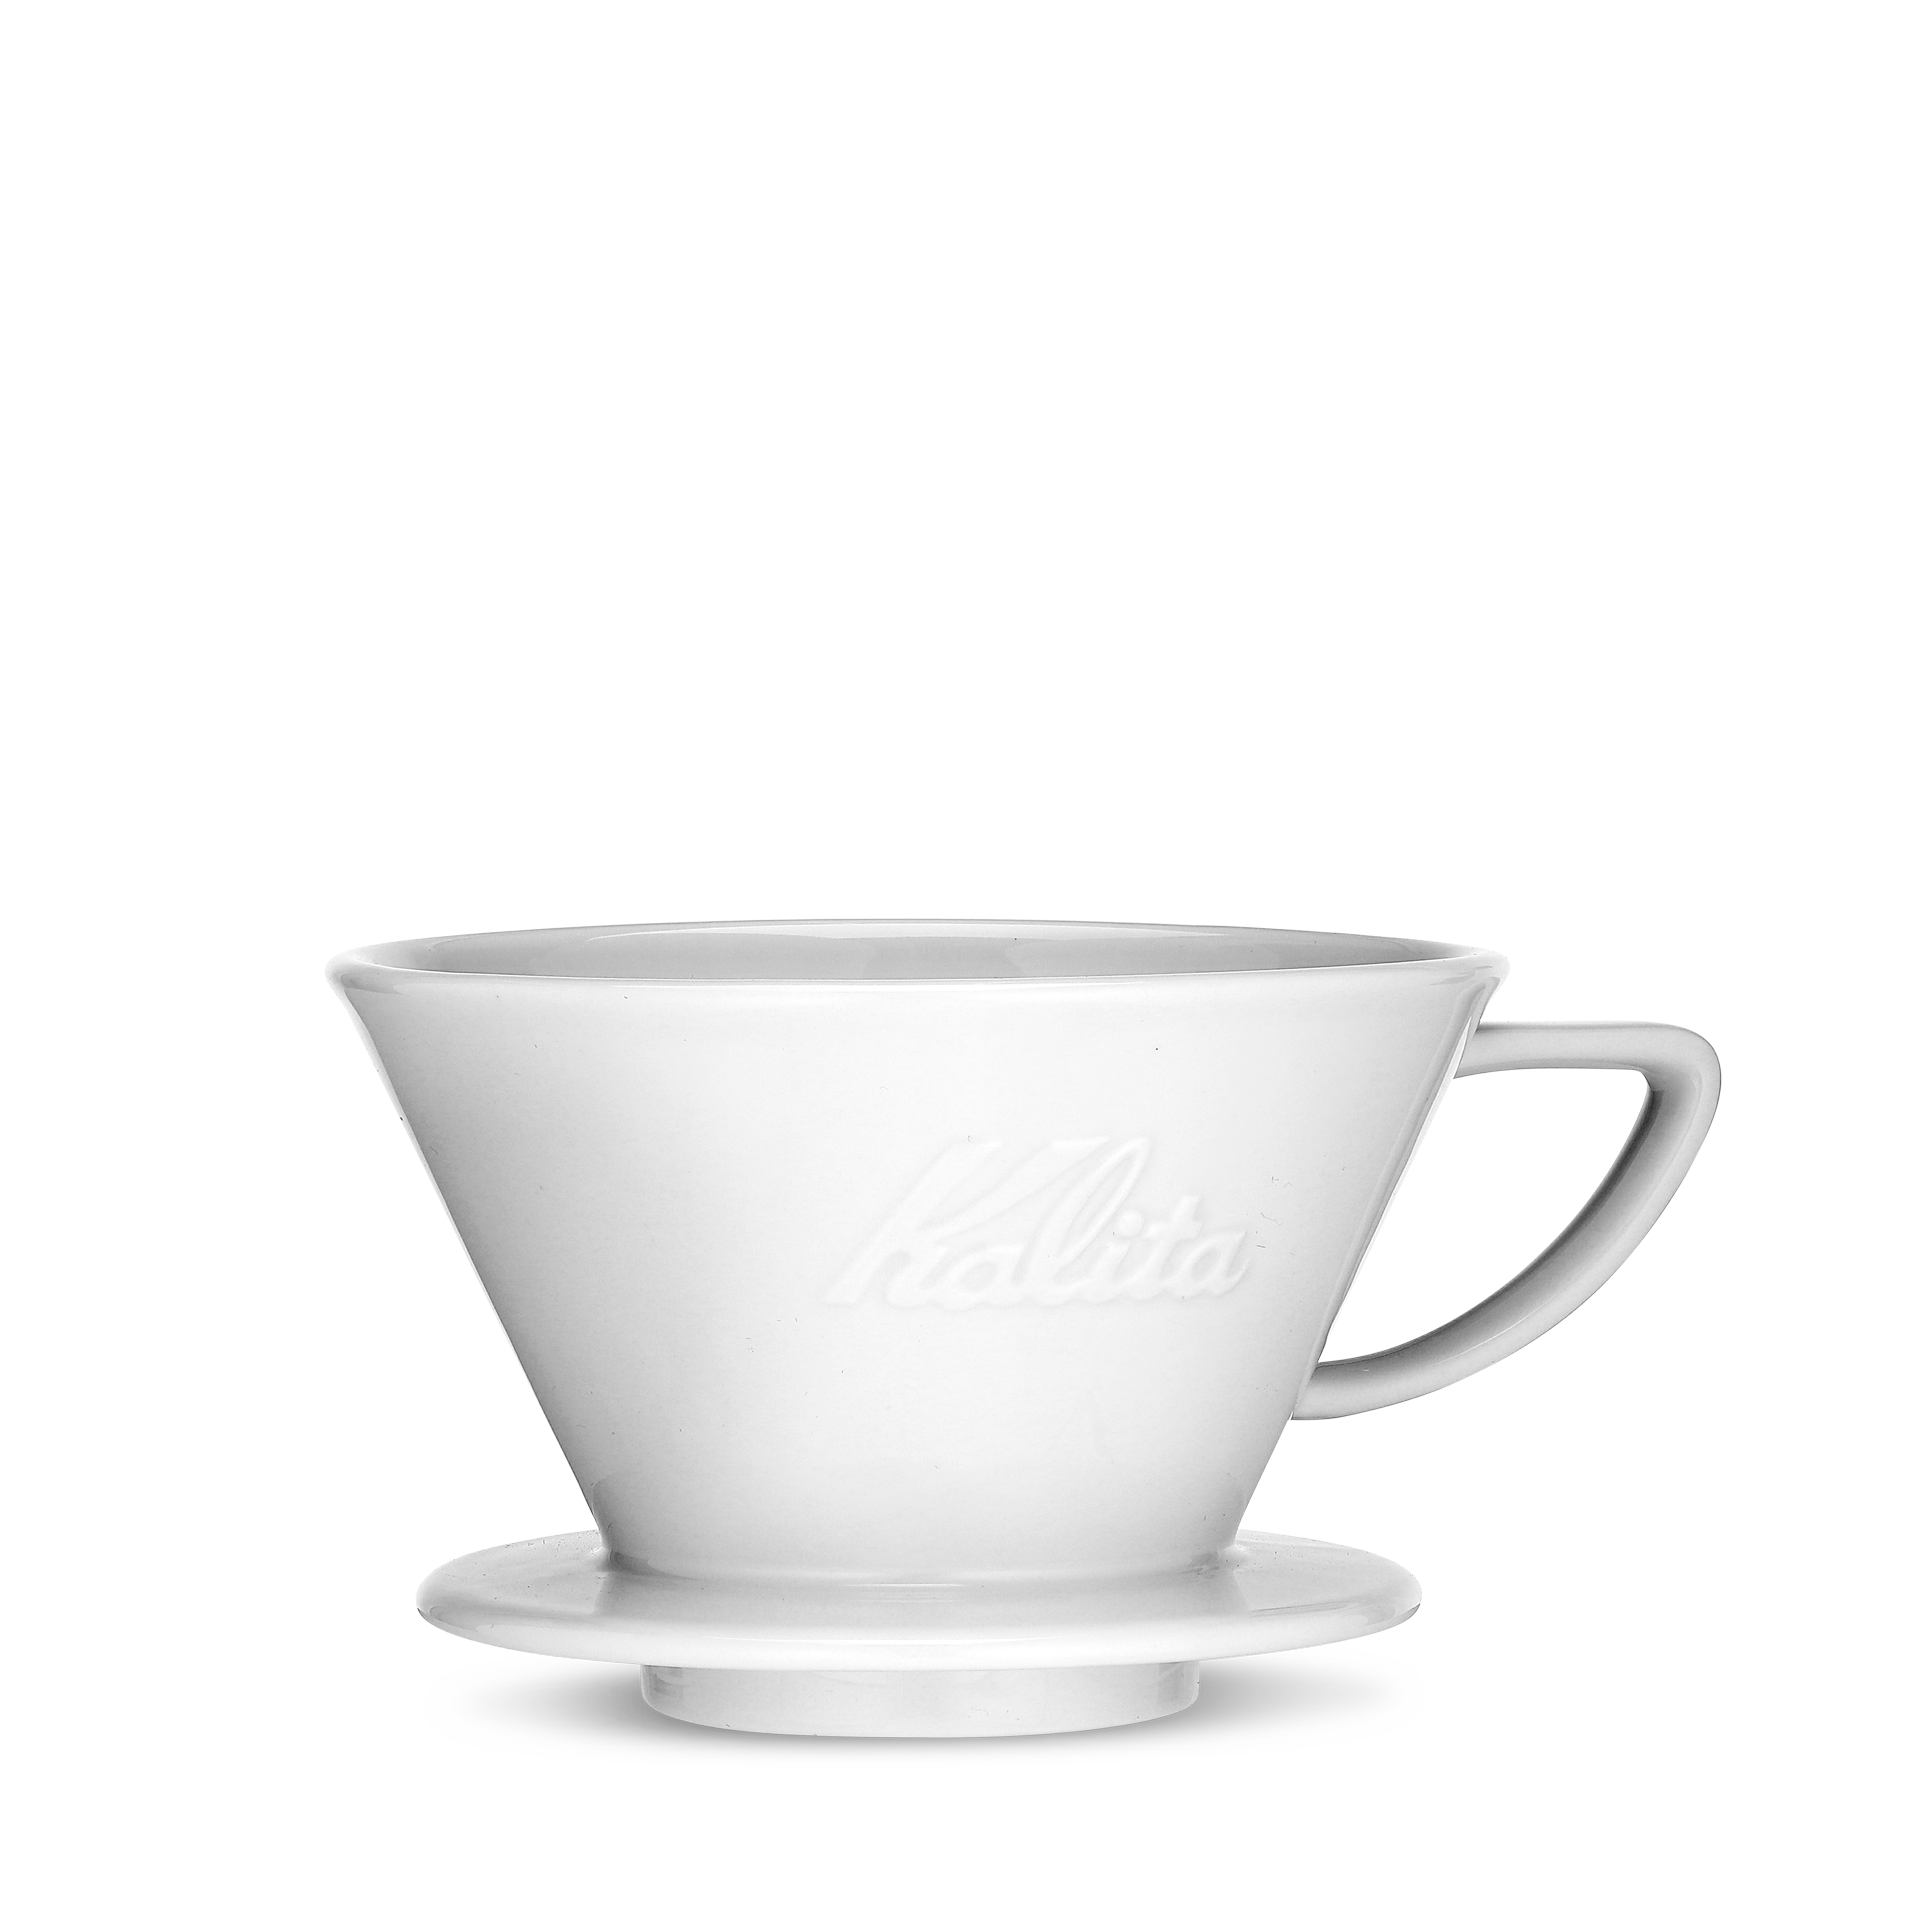 Kalita Ceramic Dripper